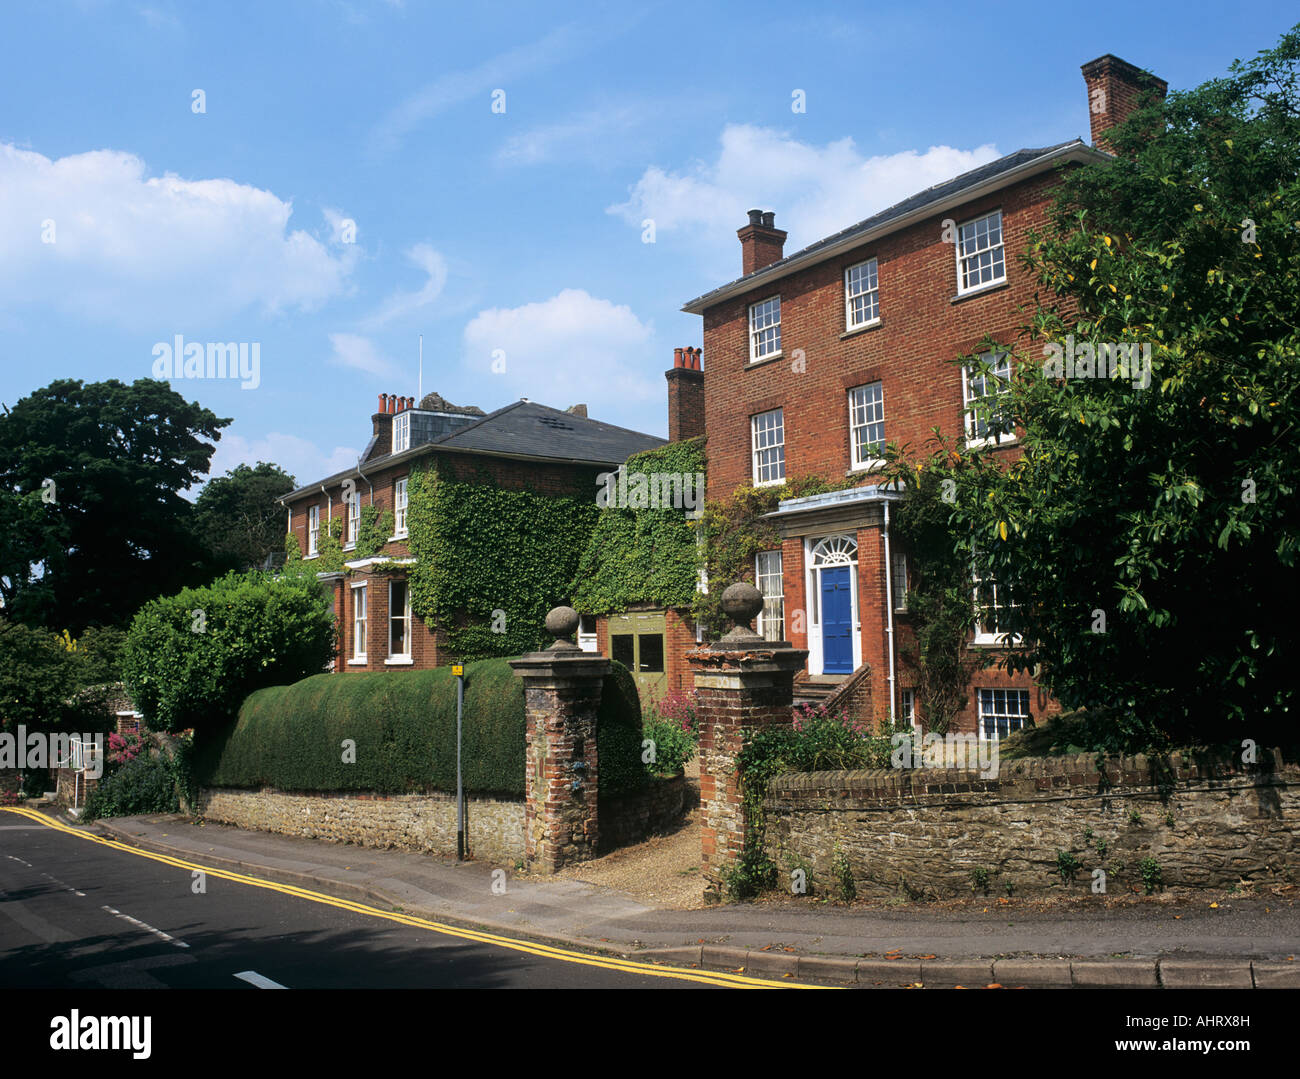 Lewis Carroll's home 'The Chestnuts' where Rev Charles Dodgeson author Alice in Wonderland lived. Guildford - Stock Image